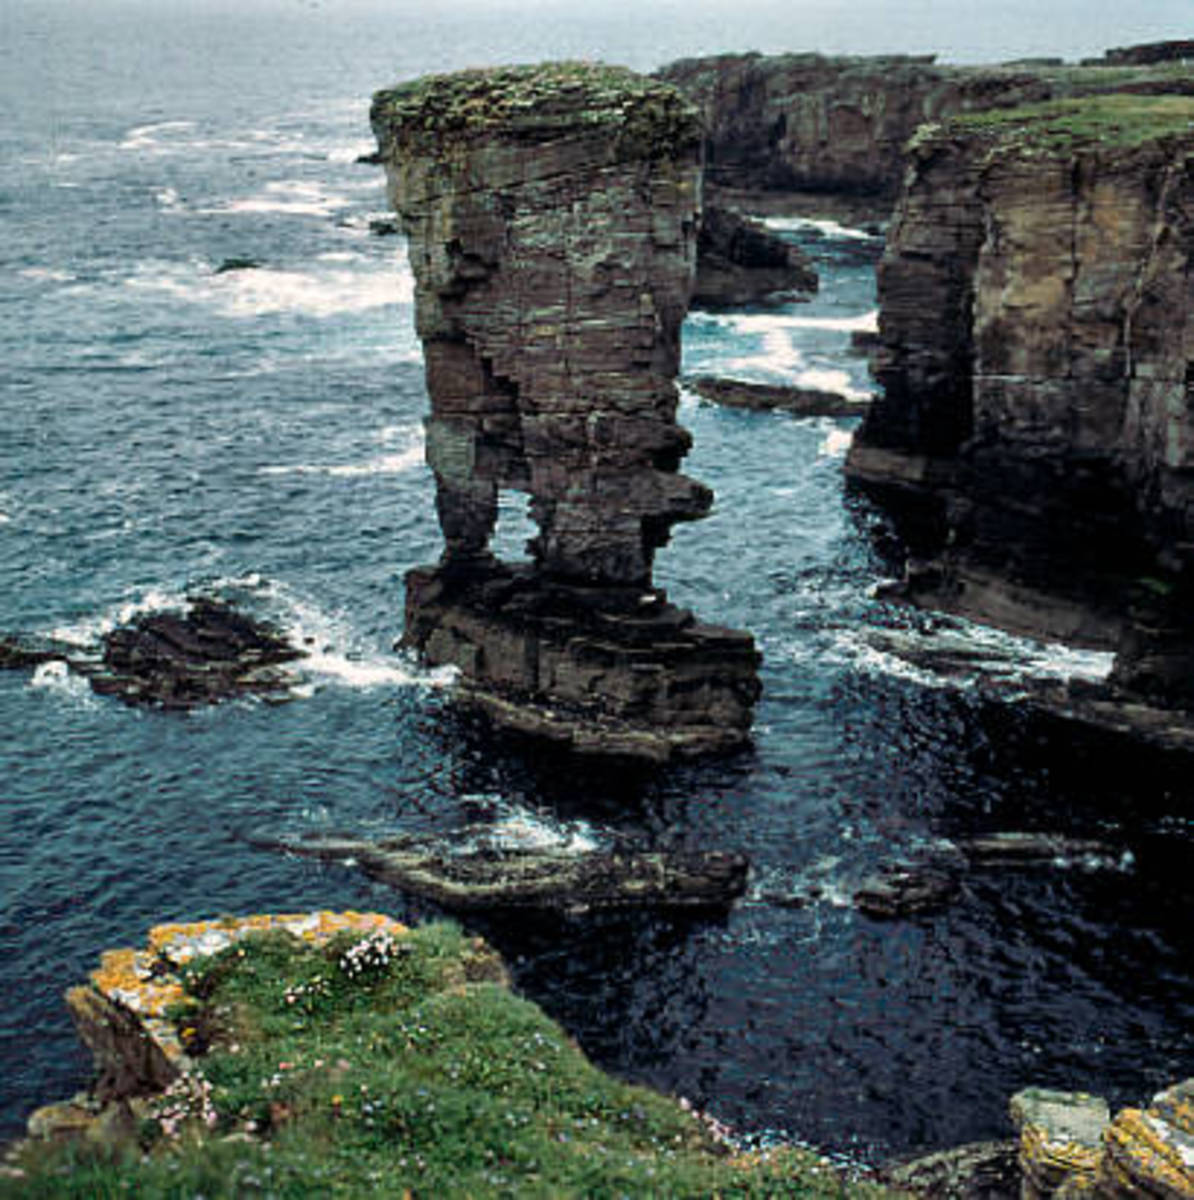 Some of the high cliffs and drastic rock formations found in the Orkney island. This formation is known as Yesnaby Castle,